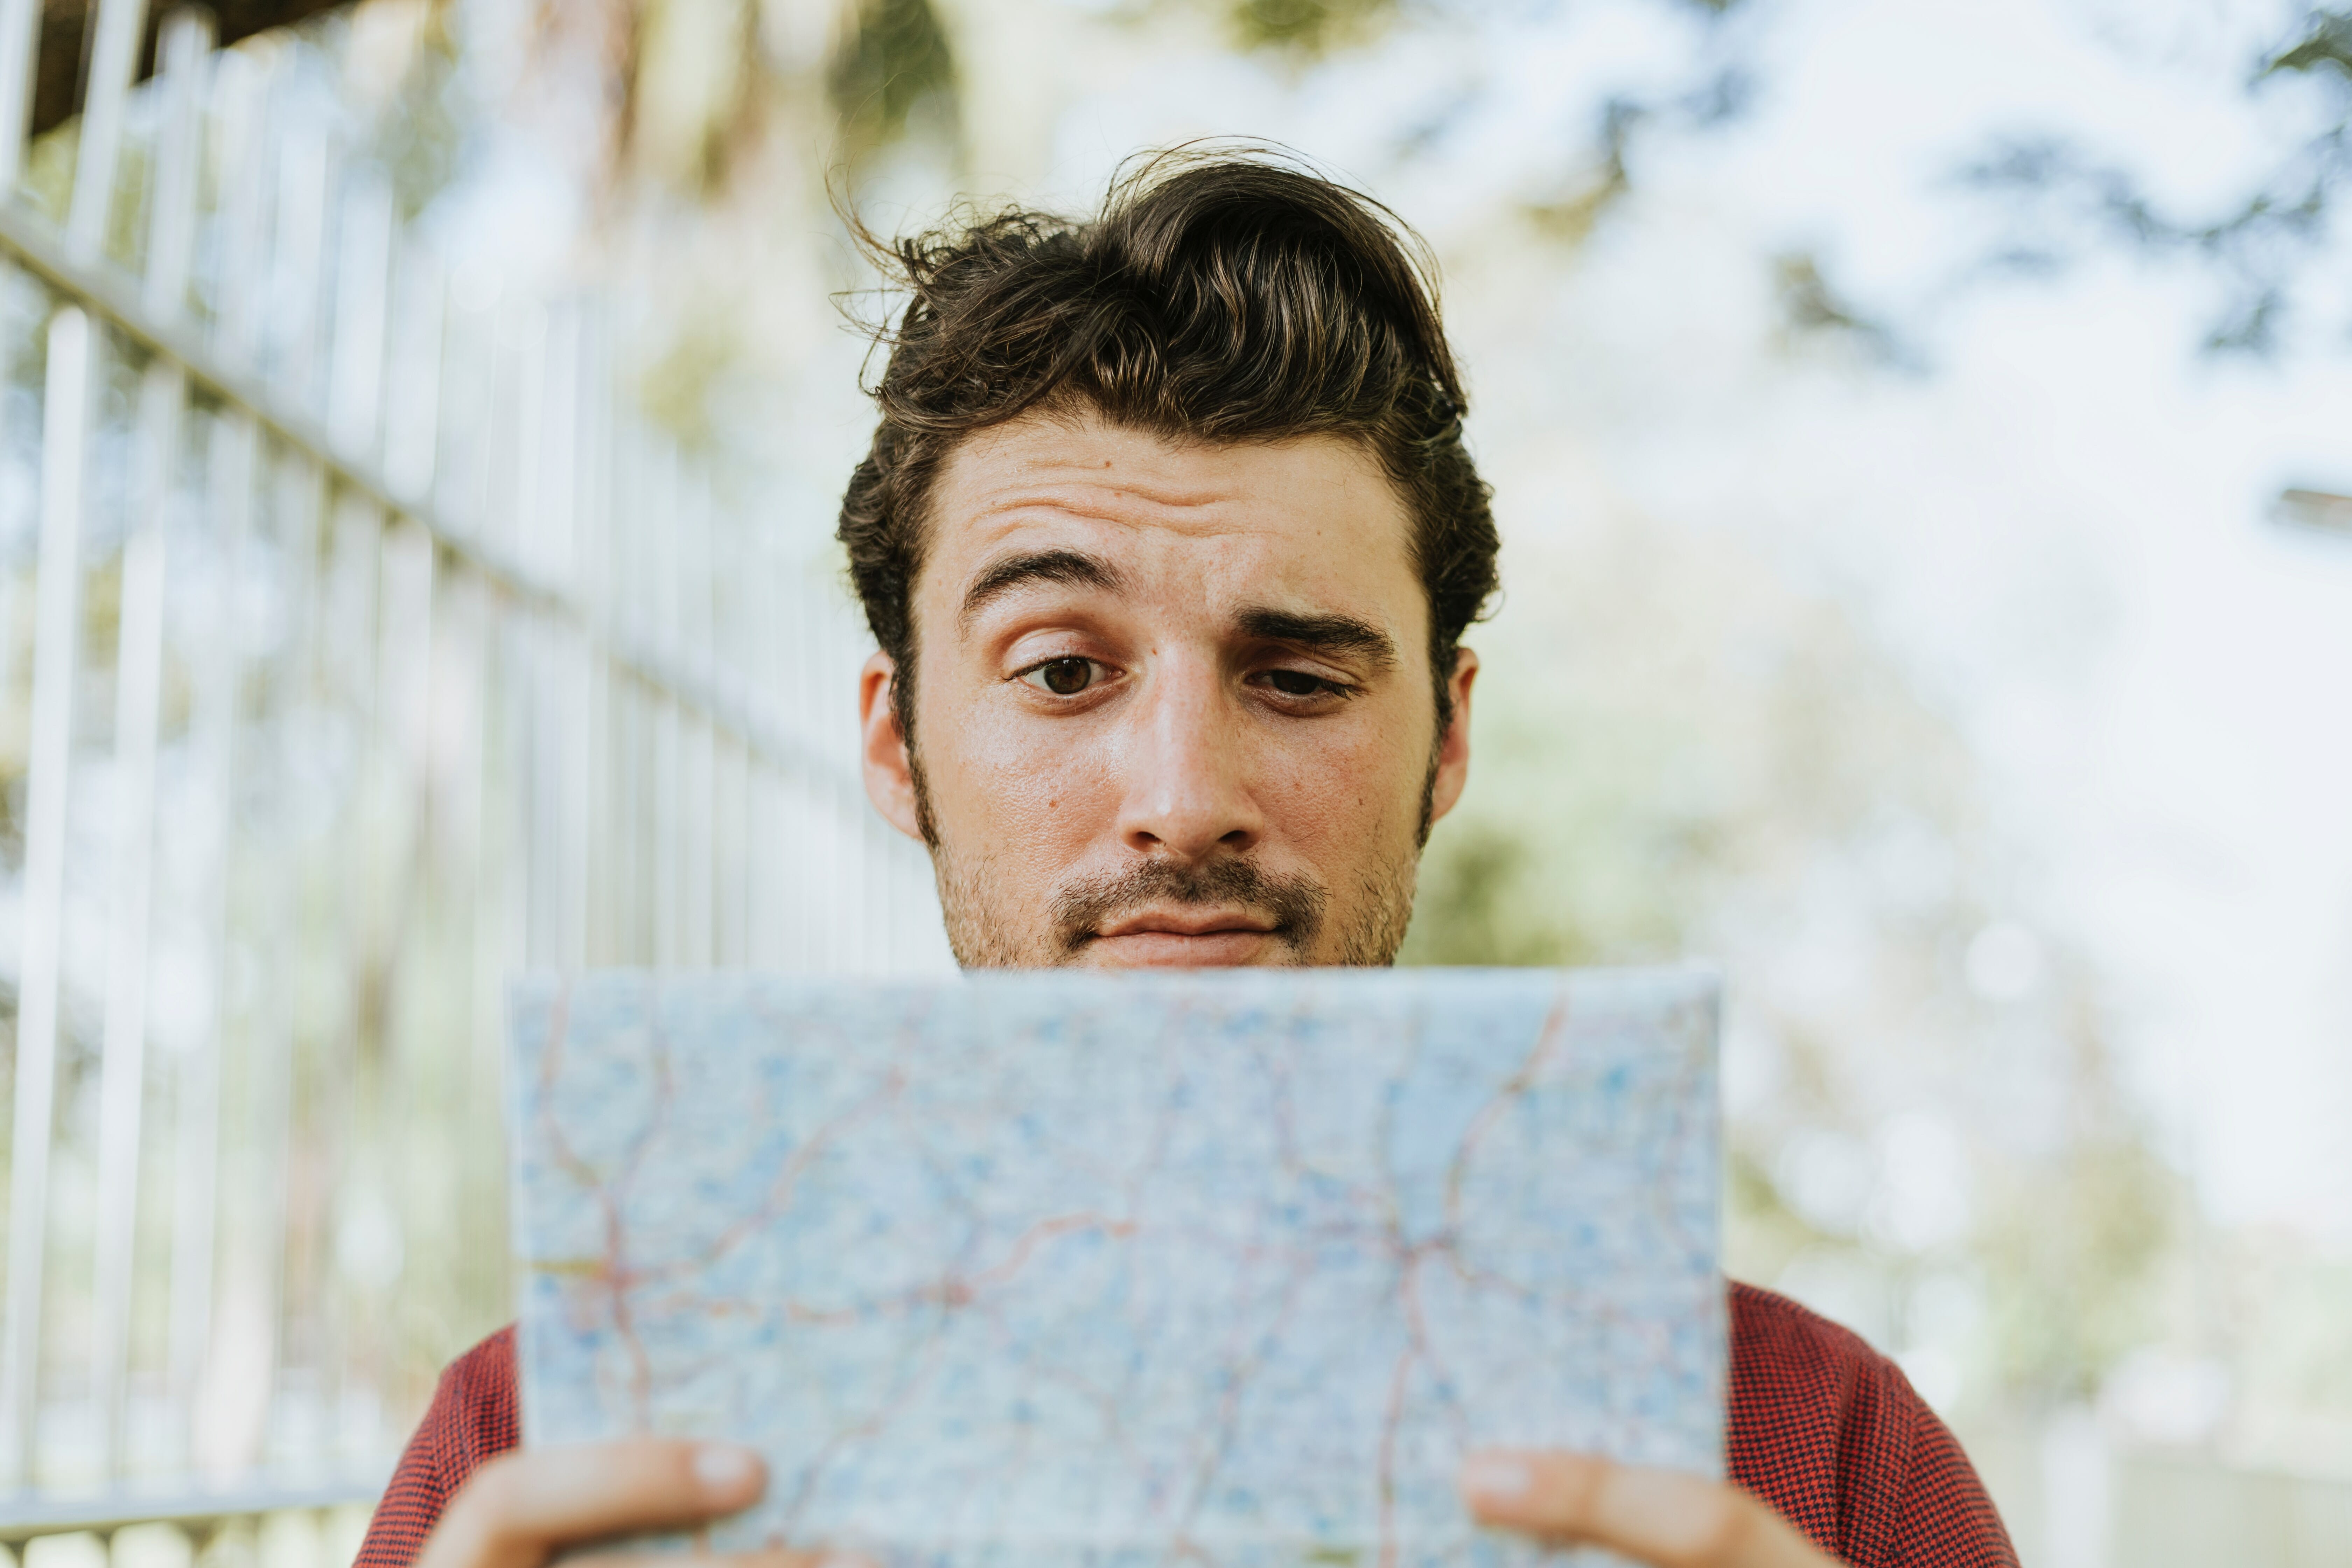 Feeling lost after graduation? Here's what you can do